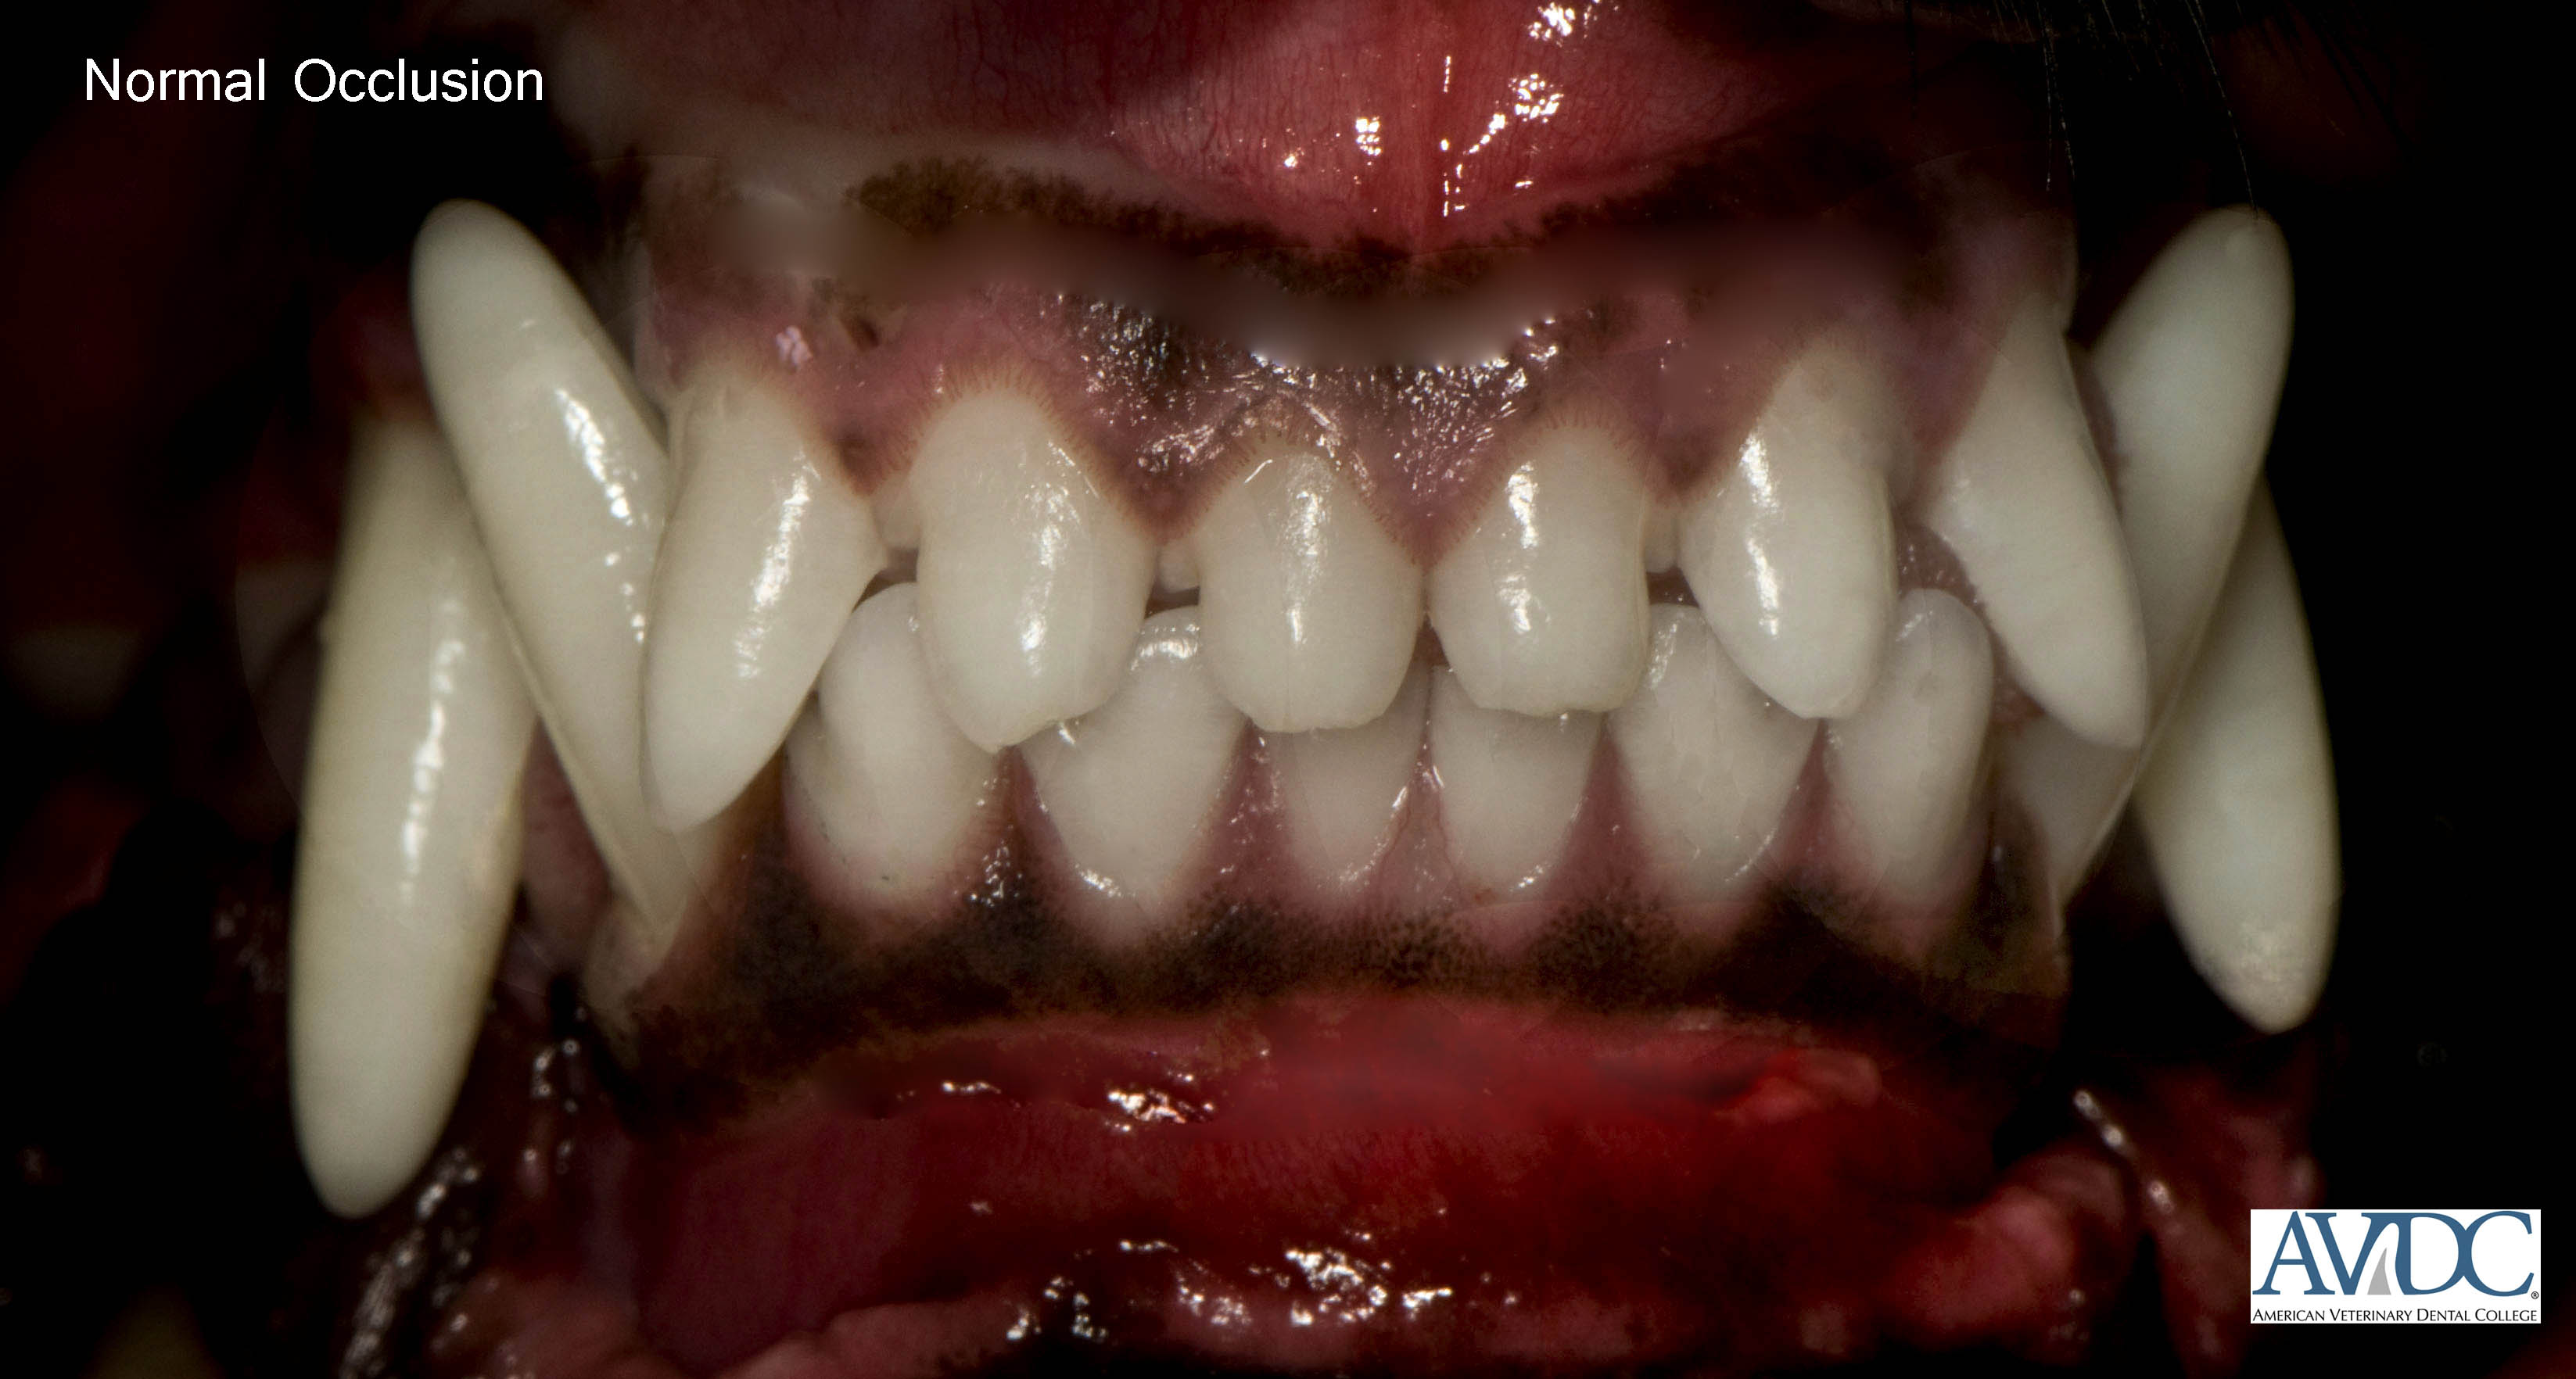 Normal rostral - Malocclusions (misaligned teeth)